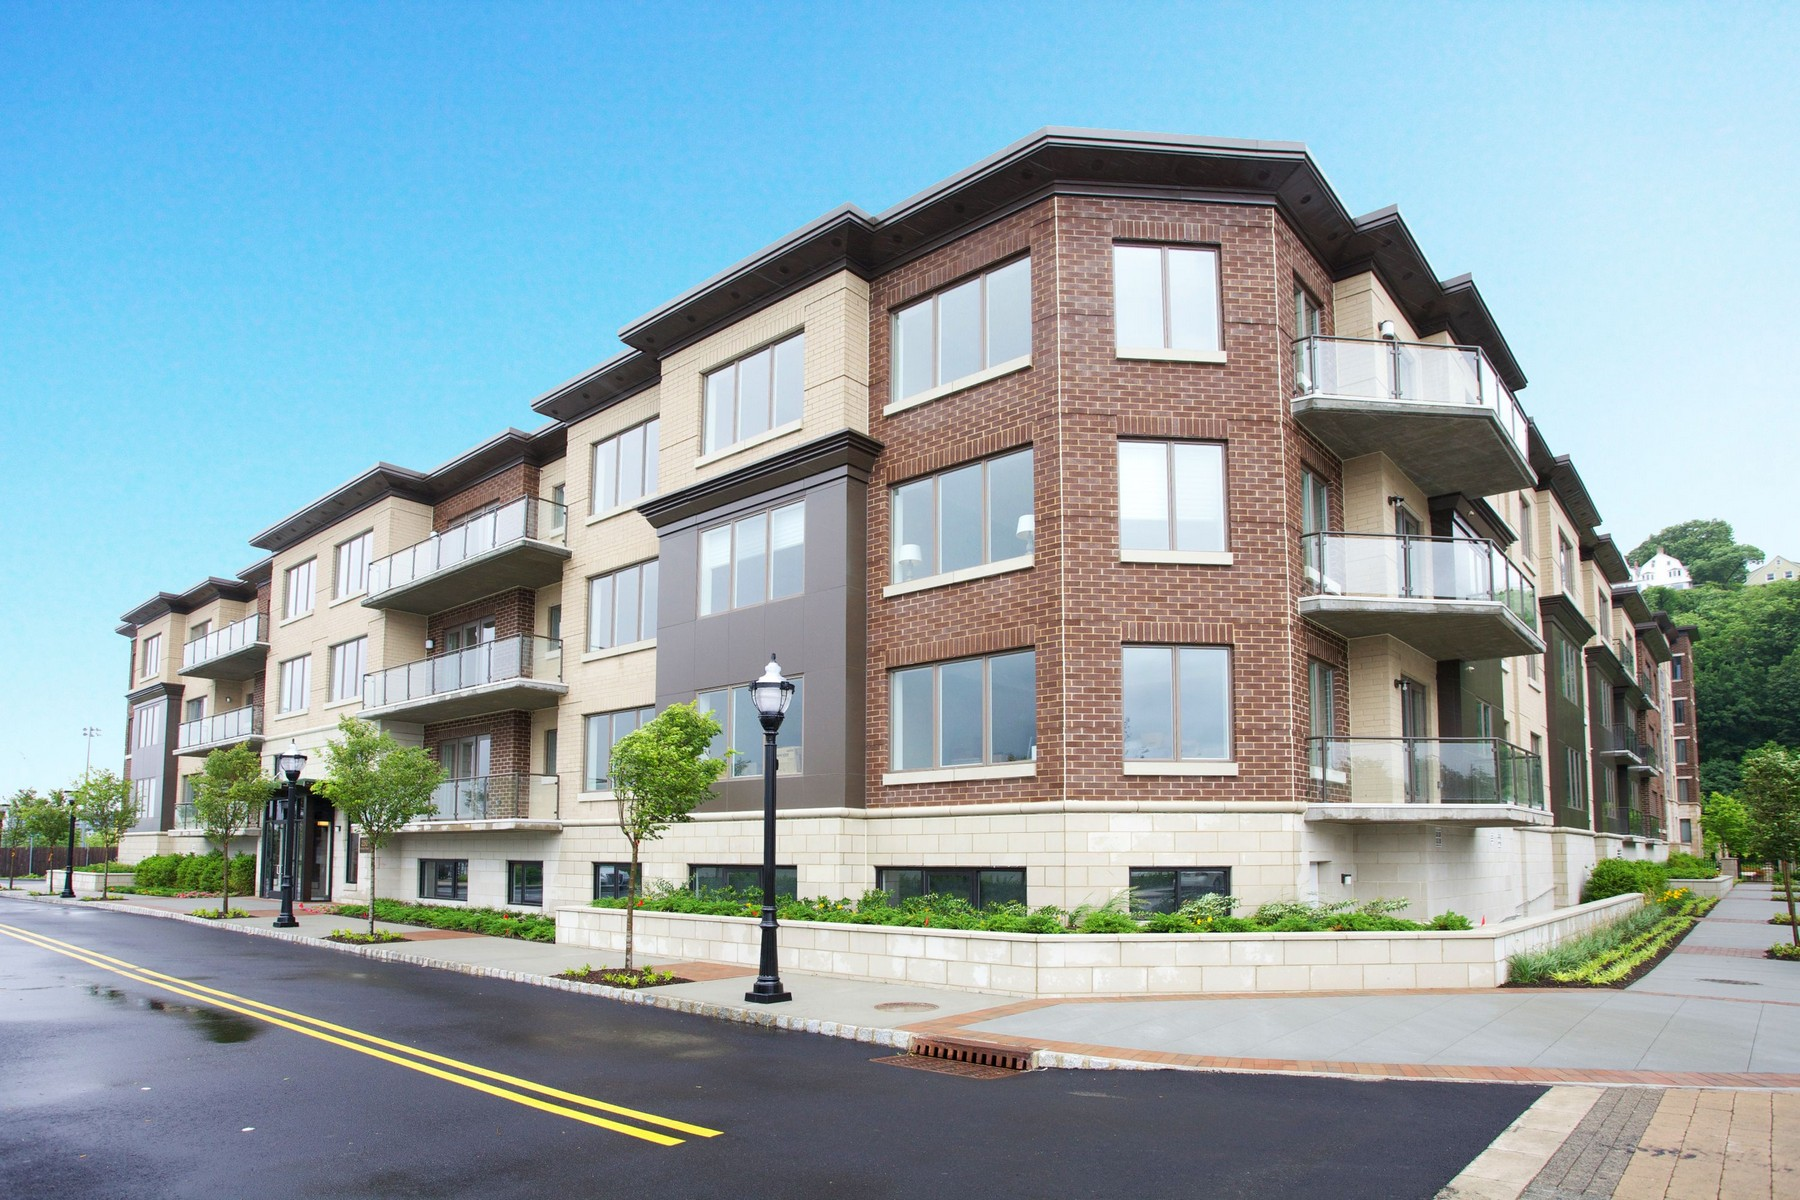 Condominium for Sale at Gem on the Hudson 44 Eton Row Henley on Hudson Weehawken, New Jersey 07086 United States